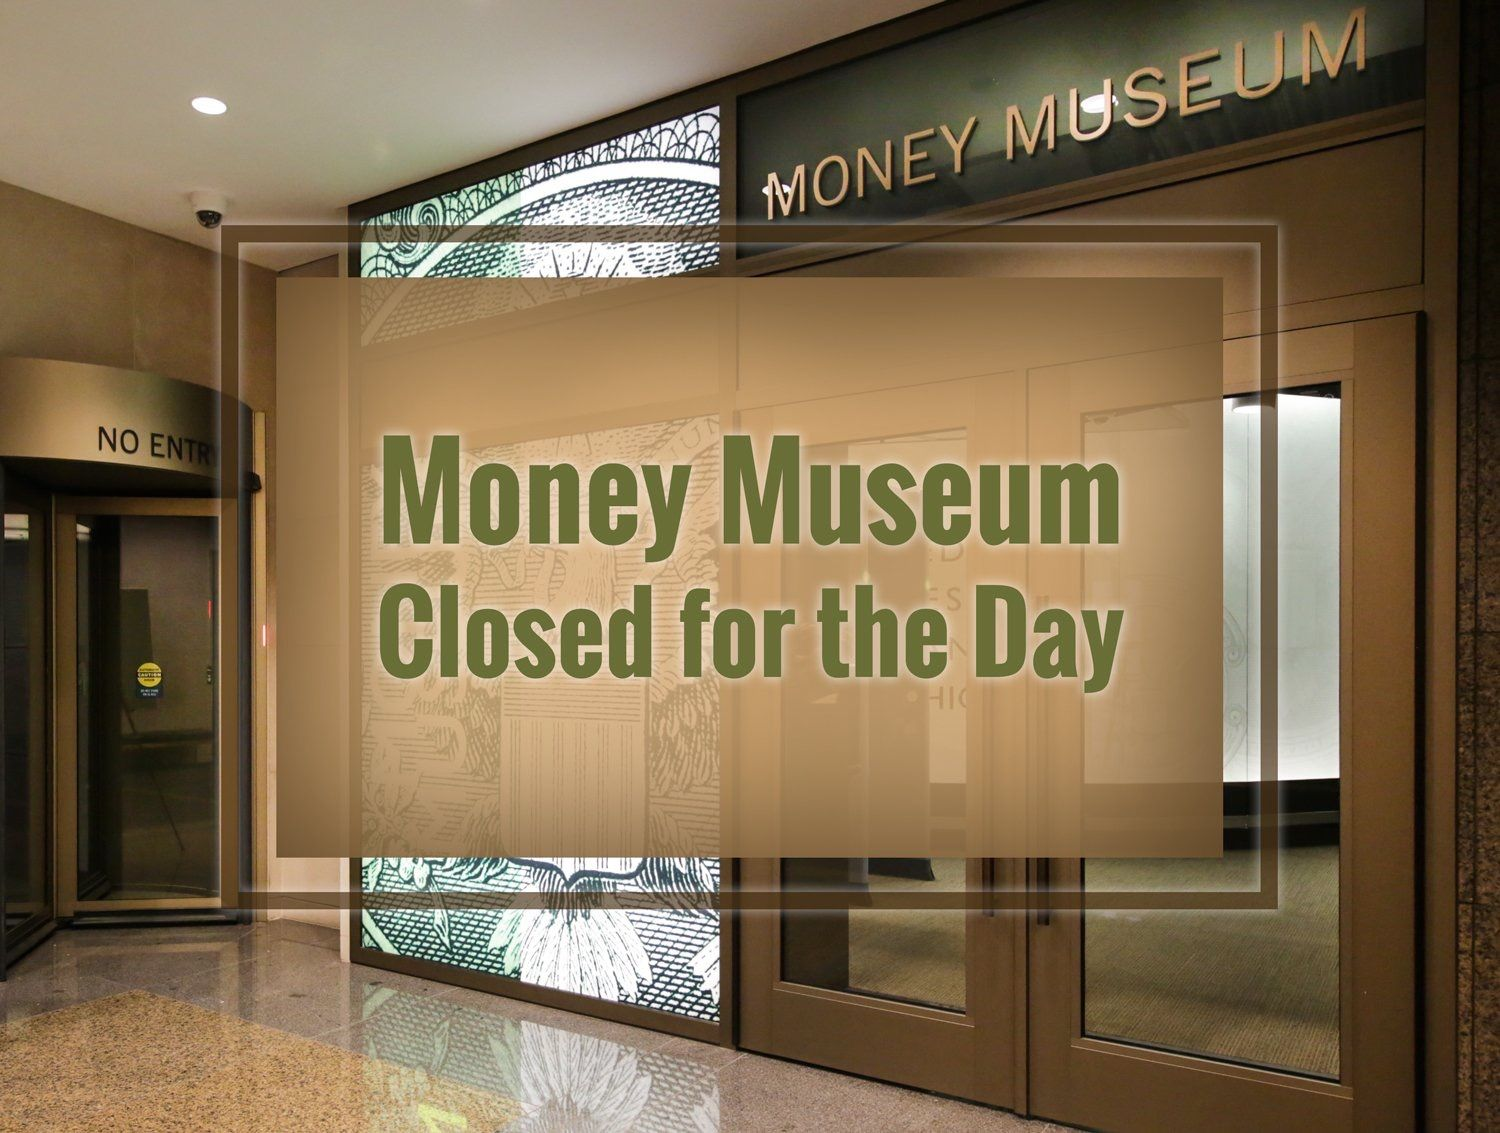 In observance of the Labor Day holiday, the Money Museum